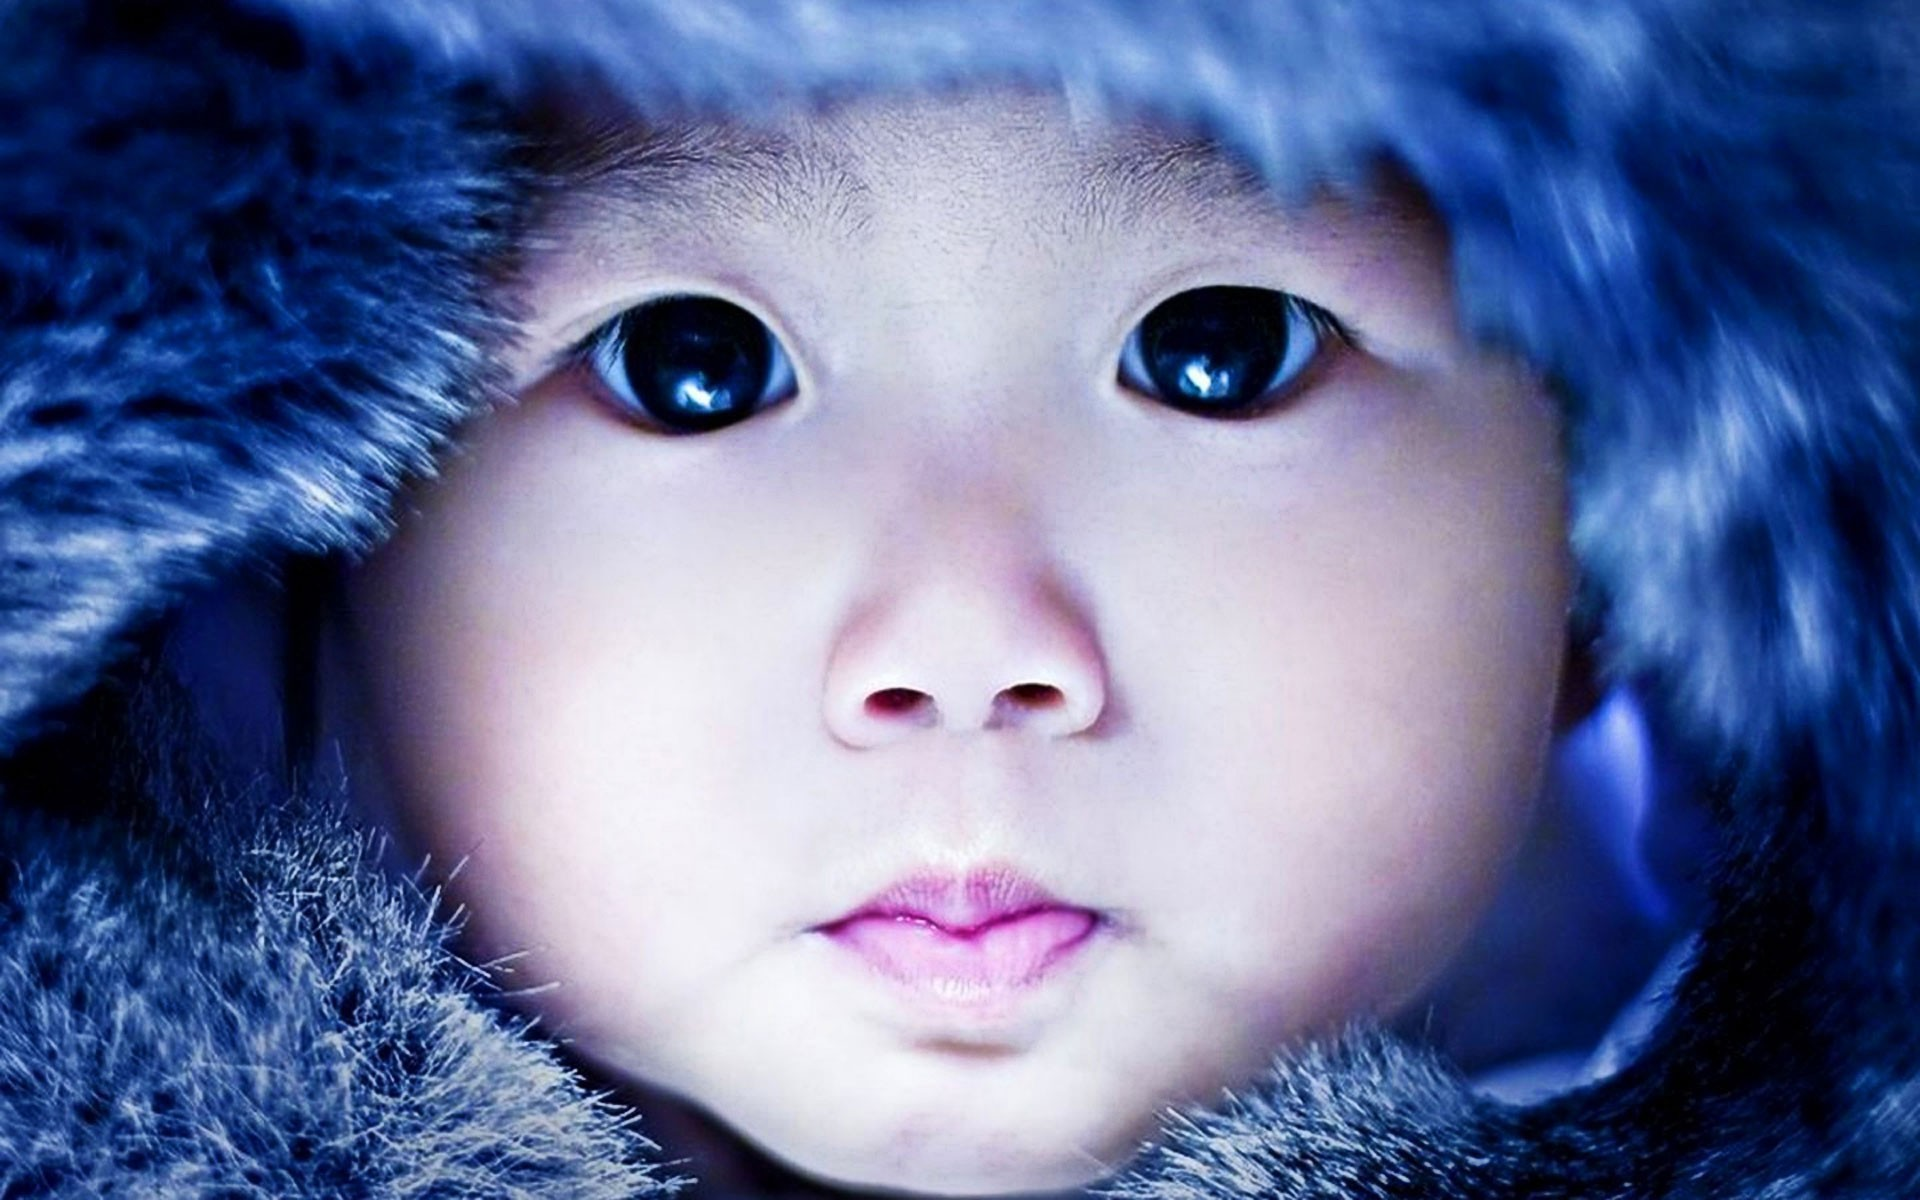 Cute Baby Mobile Wallpaper: Cute Baby Pics Wallpapers (64+ Images